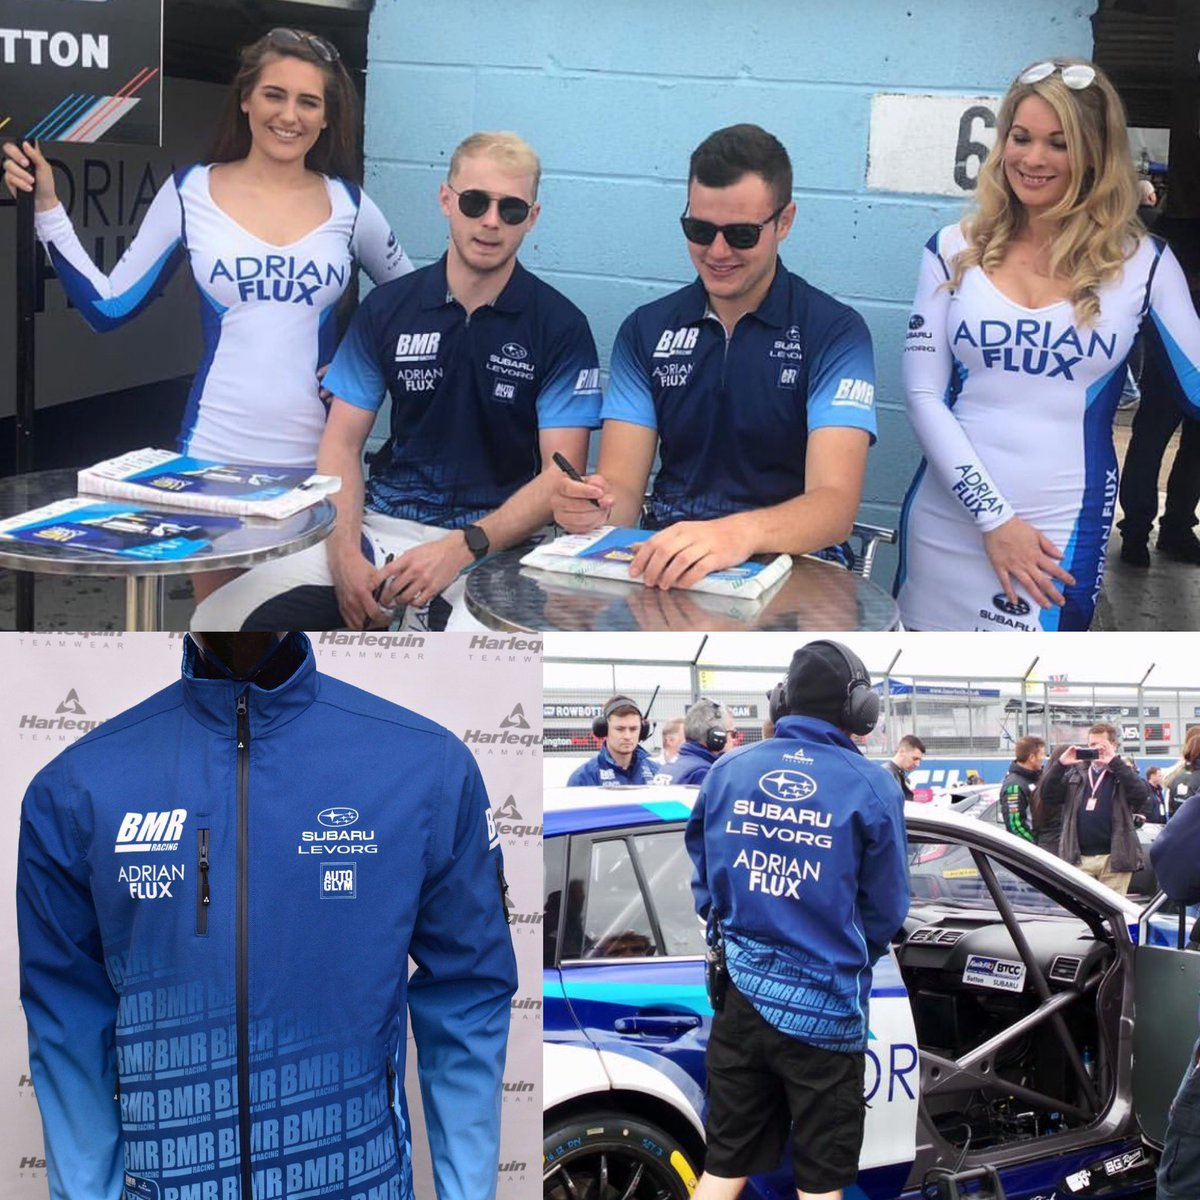 Supporters of @TeamBMRRacing Subaru, @ASuttonRacing & @SennaProctor?  Visit Harlequin in the Trade Area to get your 2019 BMR @AdrianFlux Subaru Levorg Teamwear, as worn by your favourite drivers & team!  Fingers crossed it's another success filled race day at Croft 🏆🏁  #BTCC